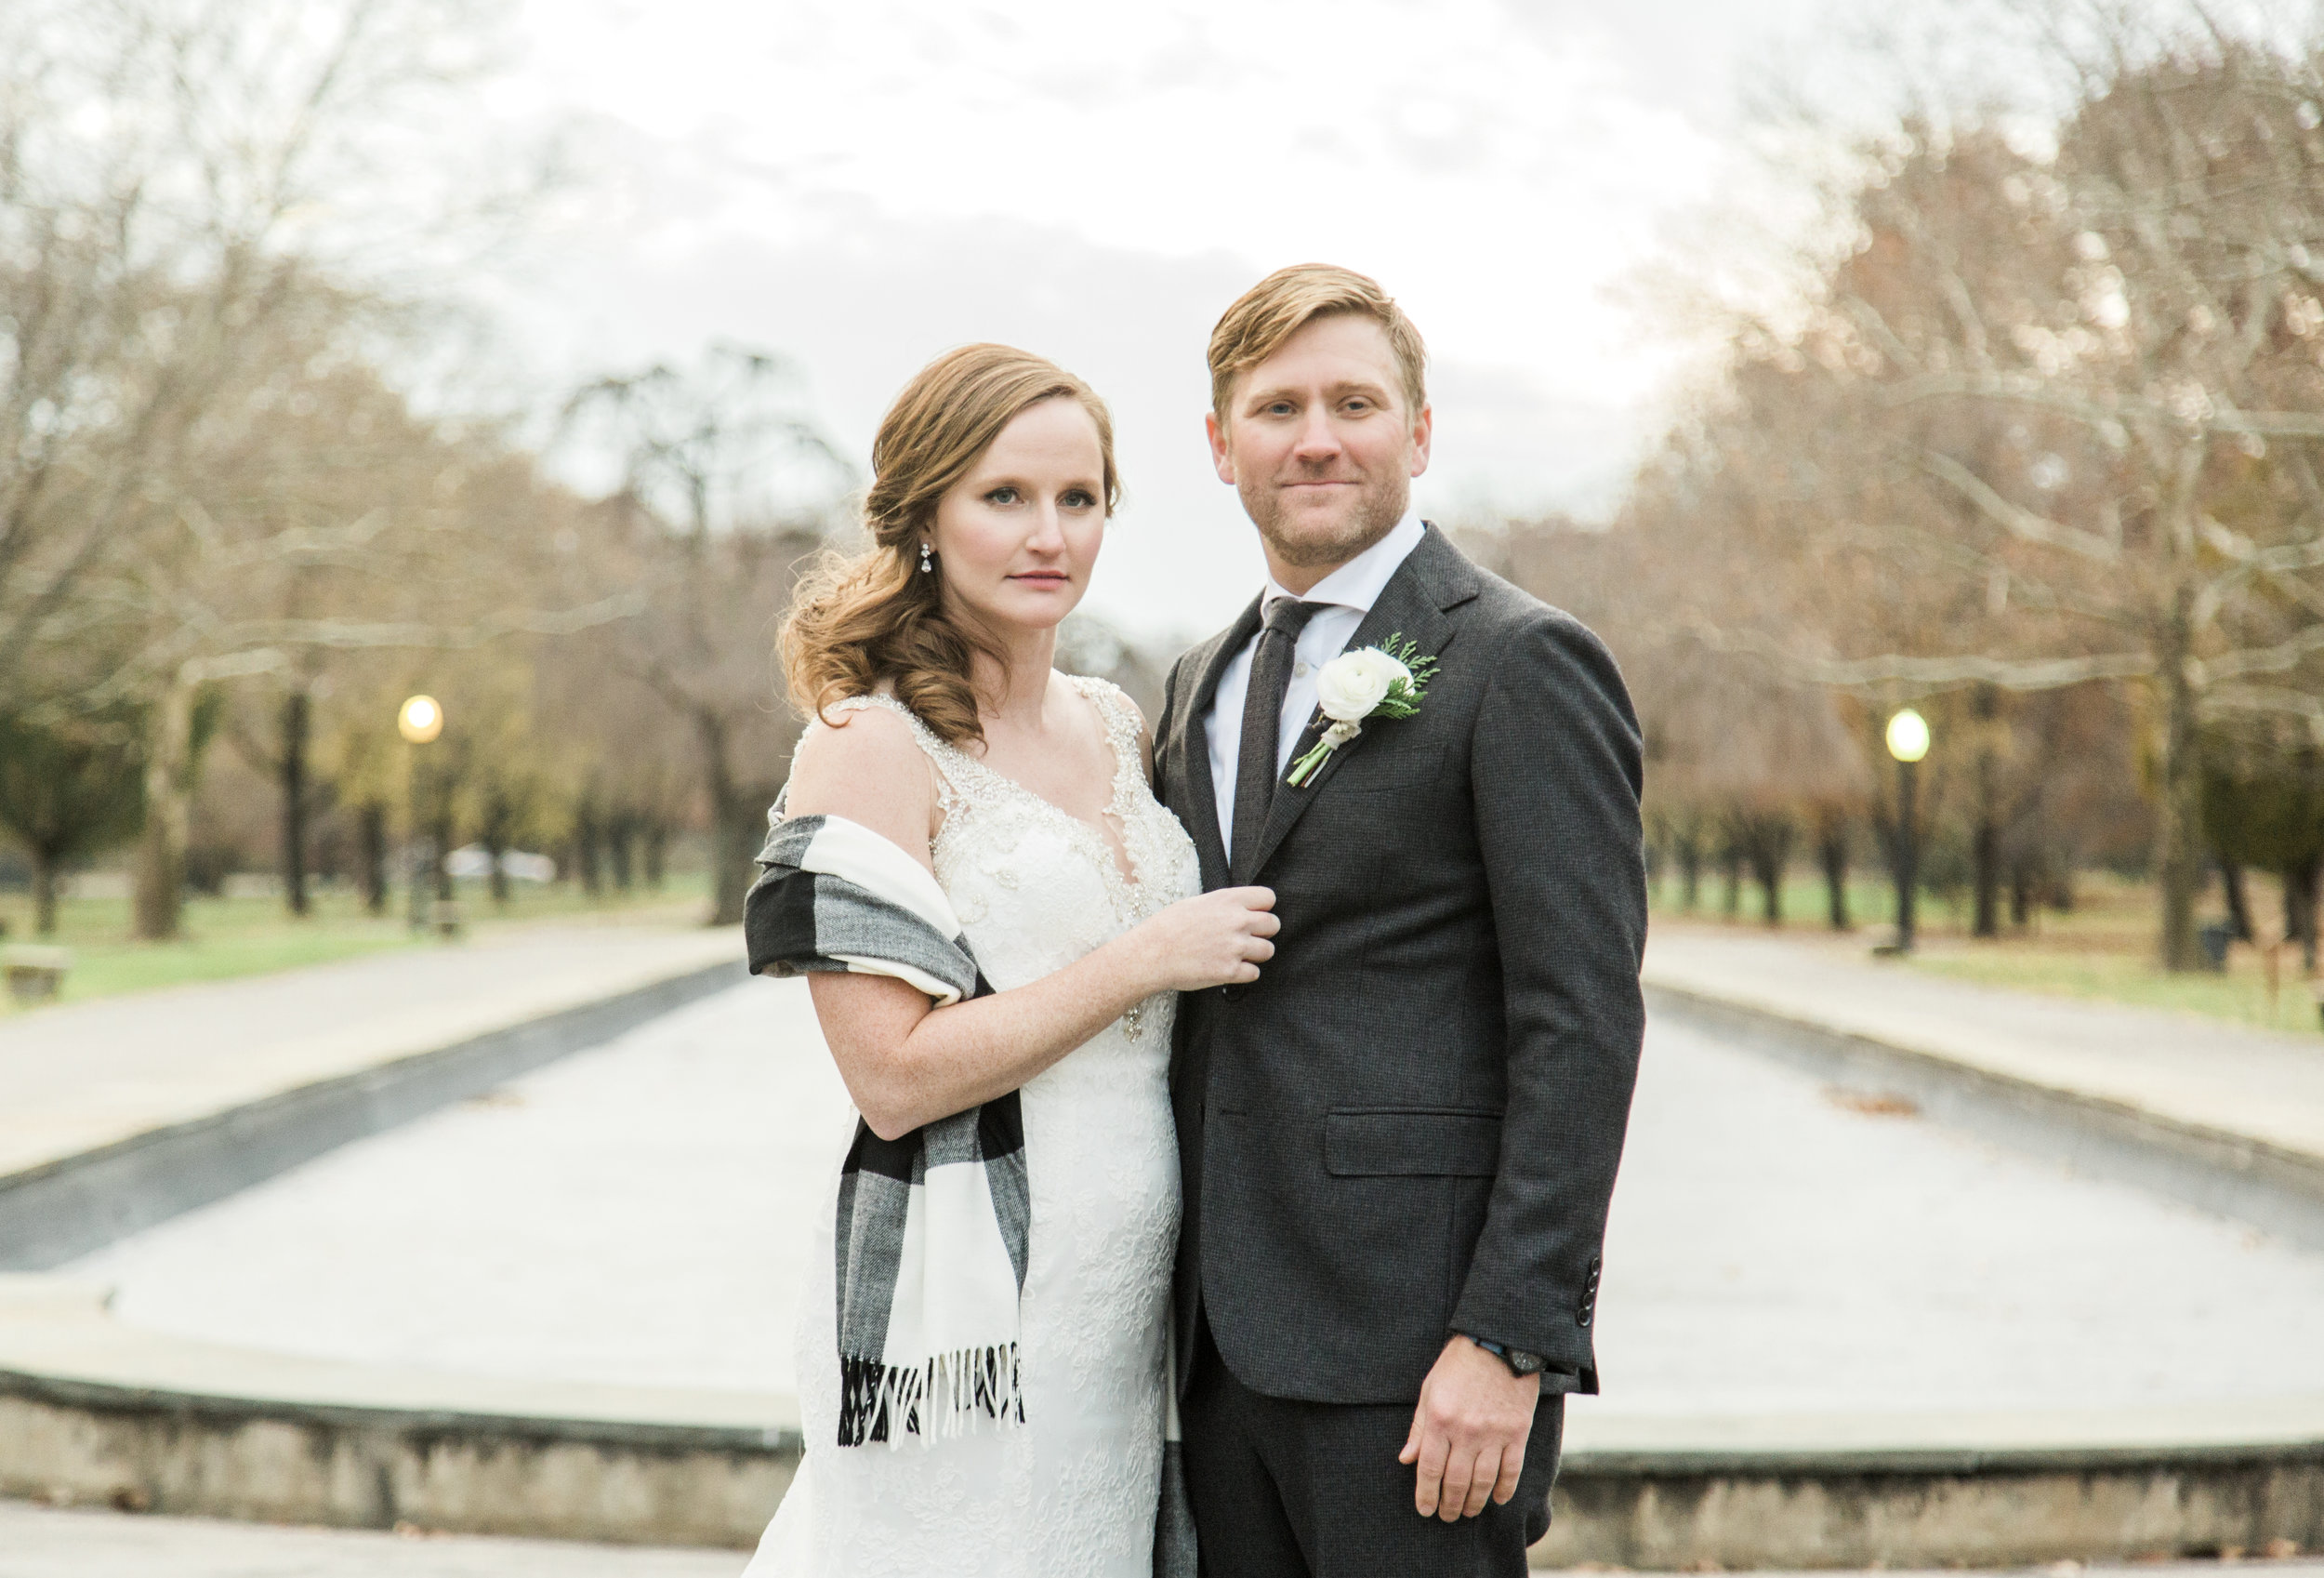 Hudson-Nichols-Martha-Stewart-Weddings-Winter-Ski-Philadelphia-Claire-Conner_133.jpg